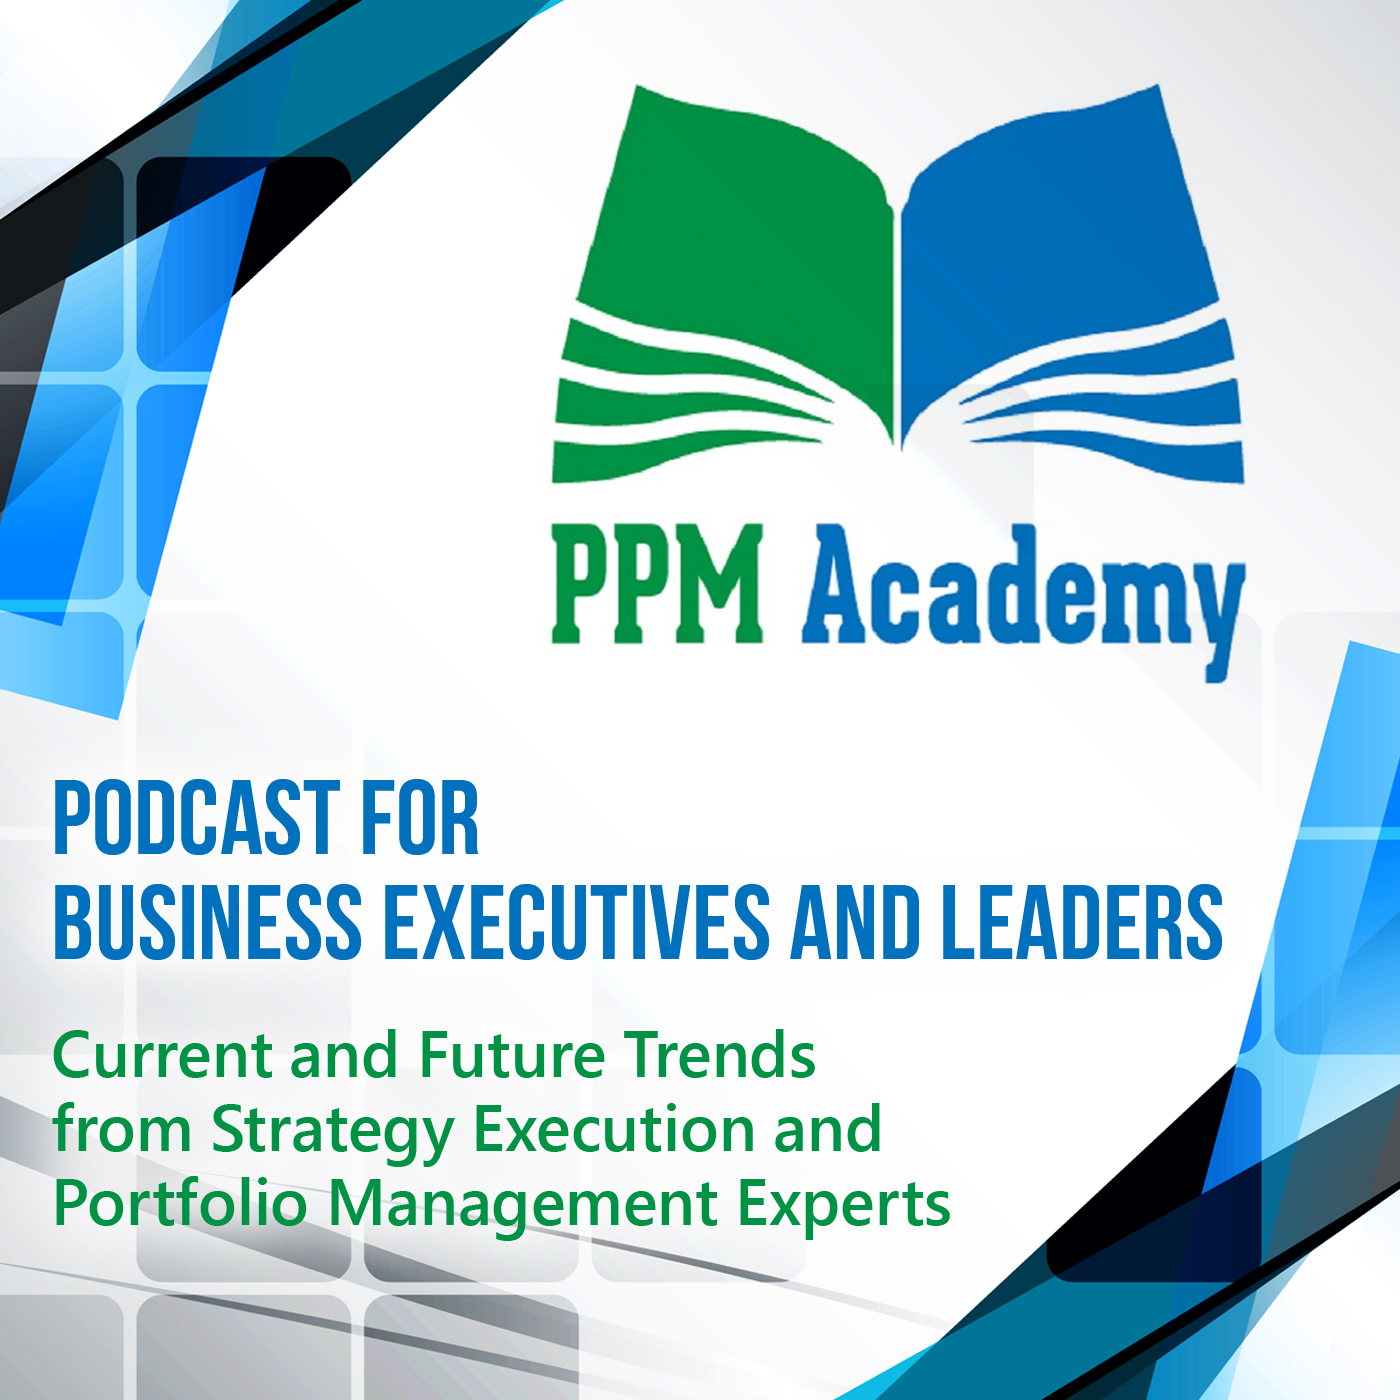 Expert Interview on Leadership in PMOs with Dr. Bojeun